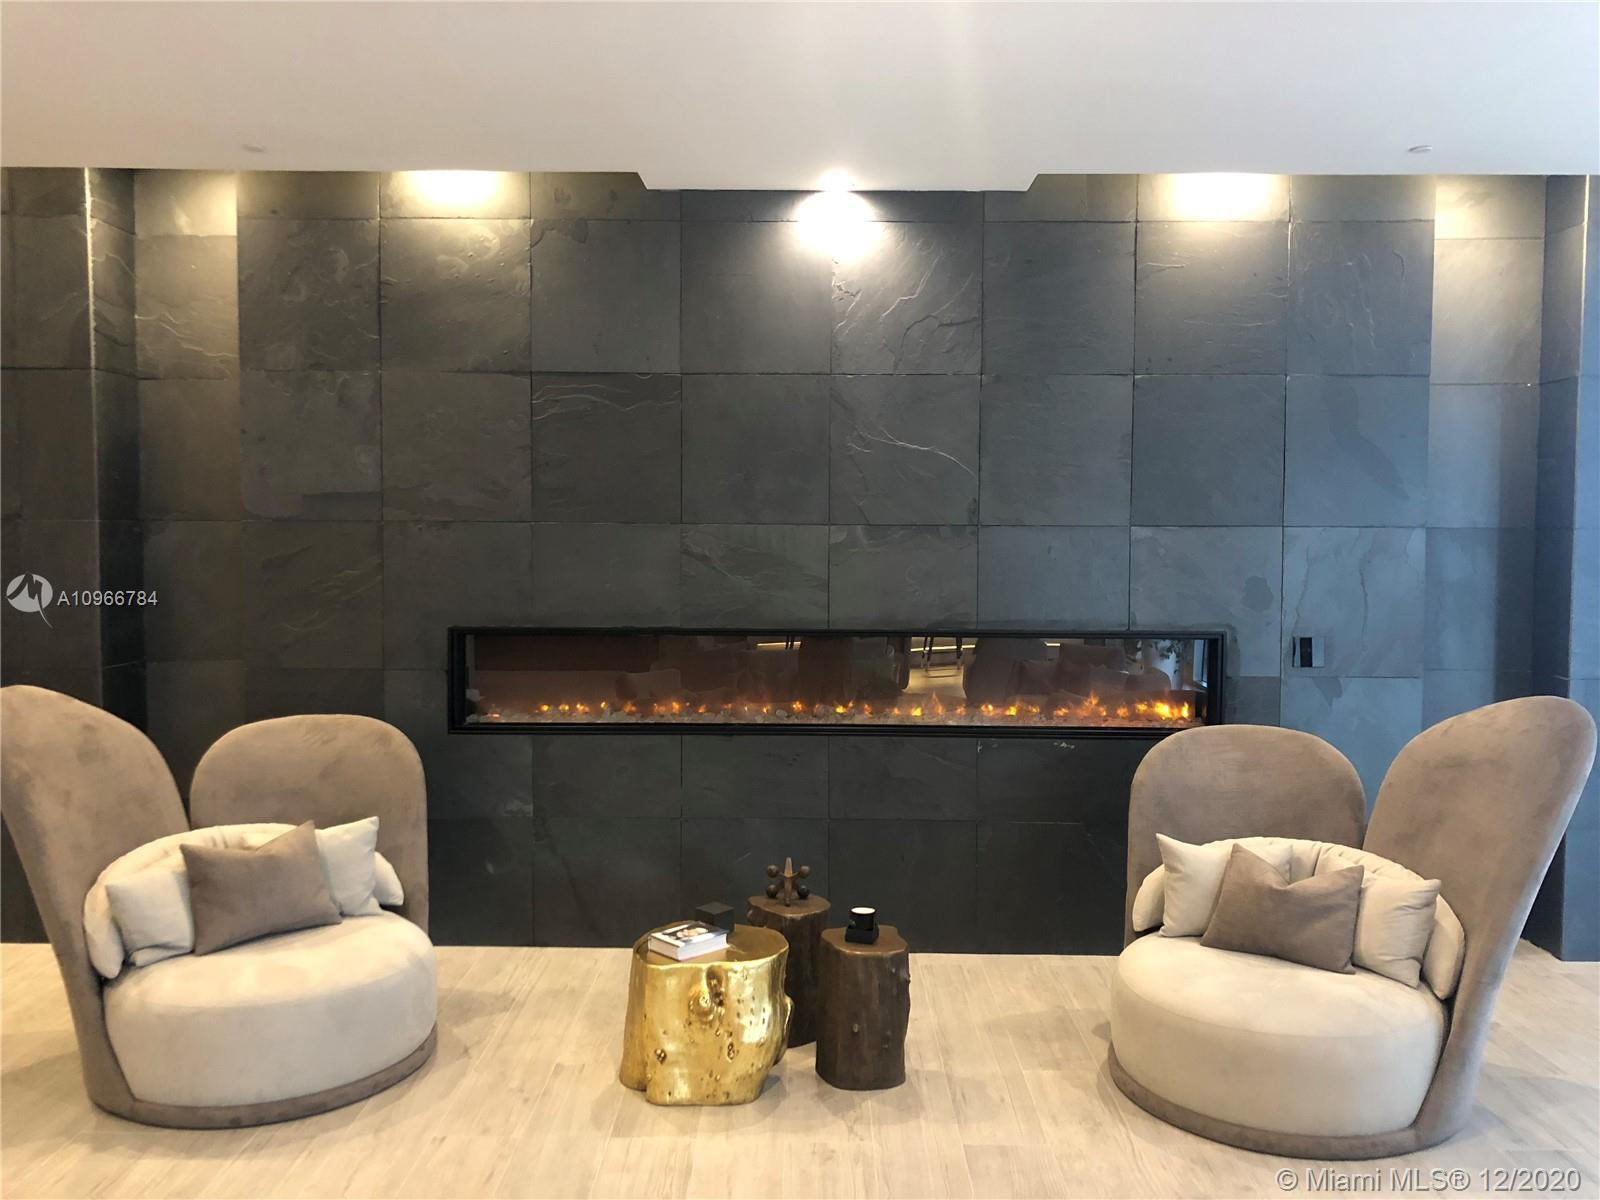 Brand new condo in a new luxury building, Aria On The Bay, unit located on the 31st floor, the unit